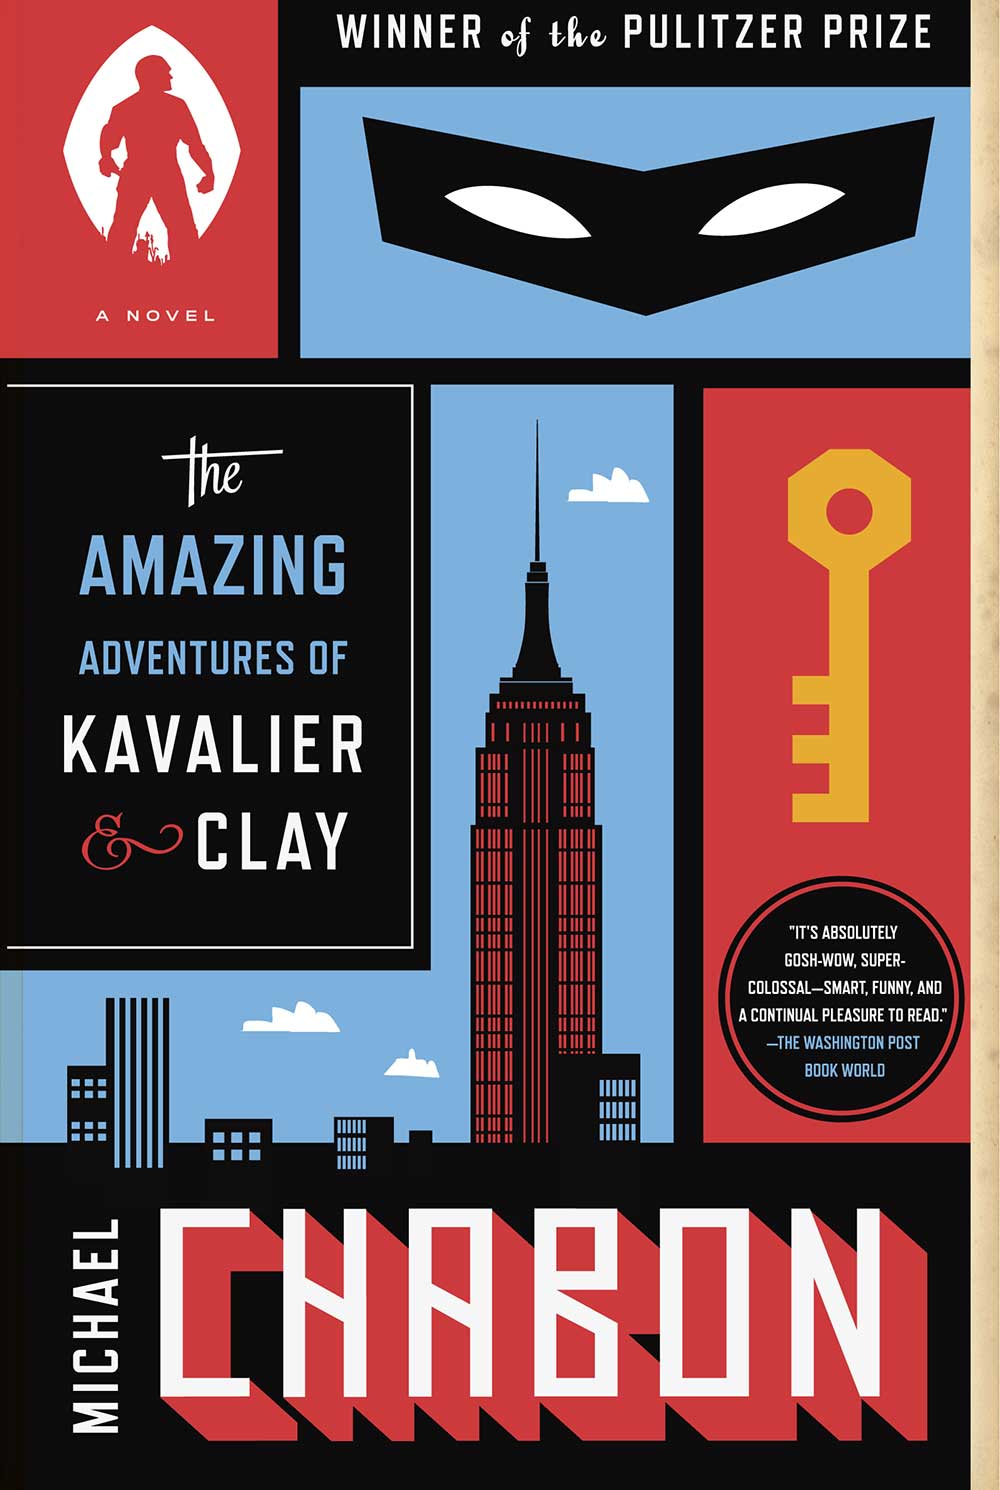 The-Amazing-Adventures-of-Kavalier-and-Clay